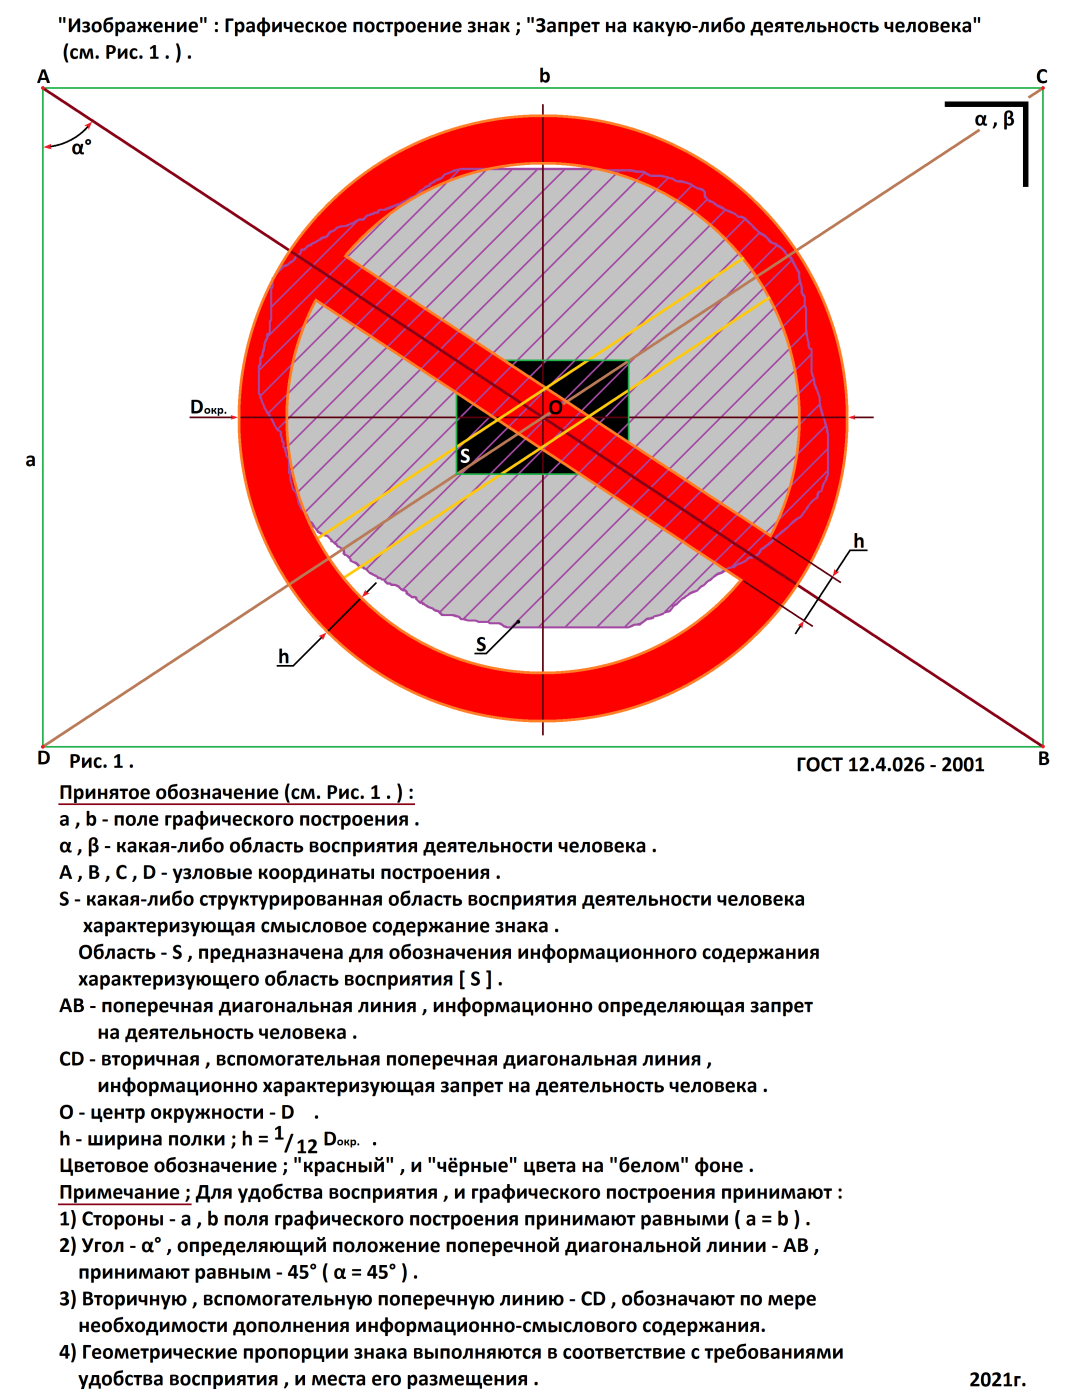 """Arthur Gabdrupes. """"Image"""": Graphic construction of a sign; """"Ban on any human activity"""", 2021 ..."""